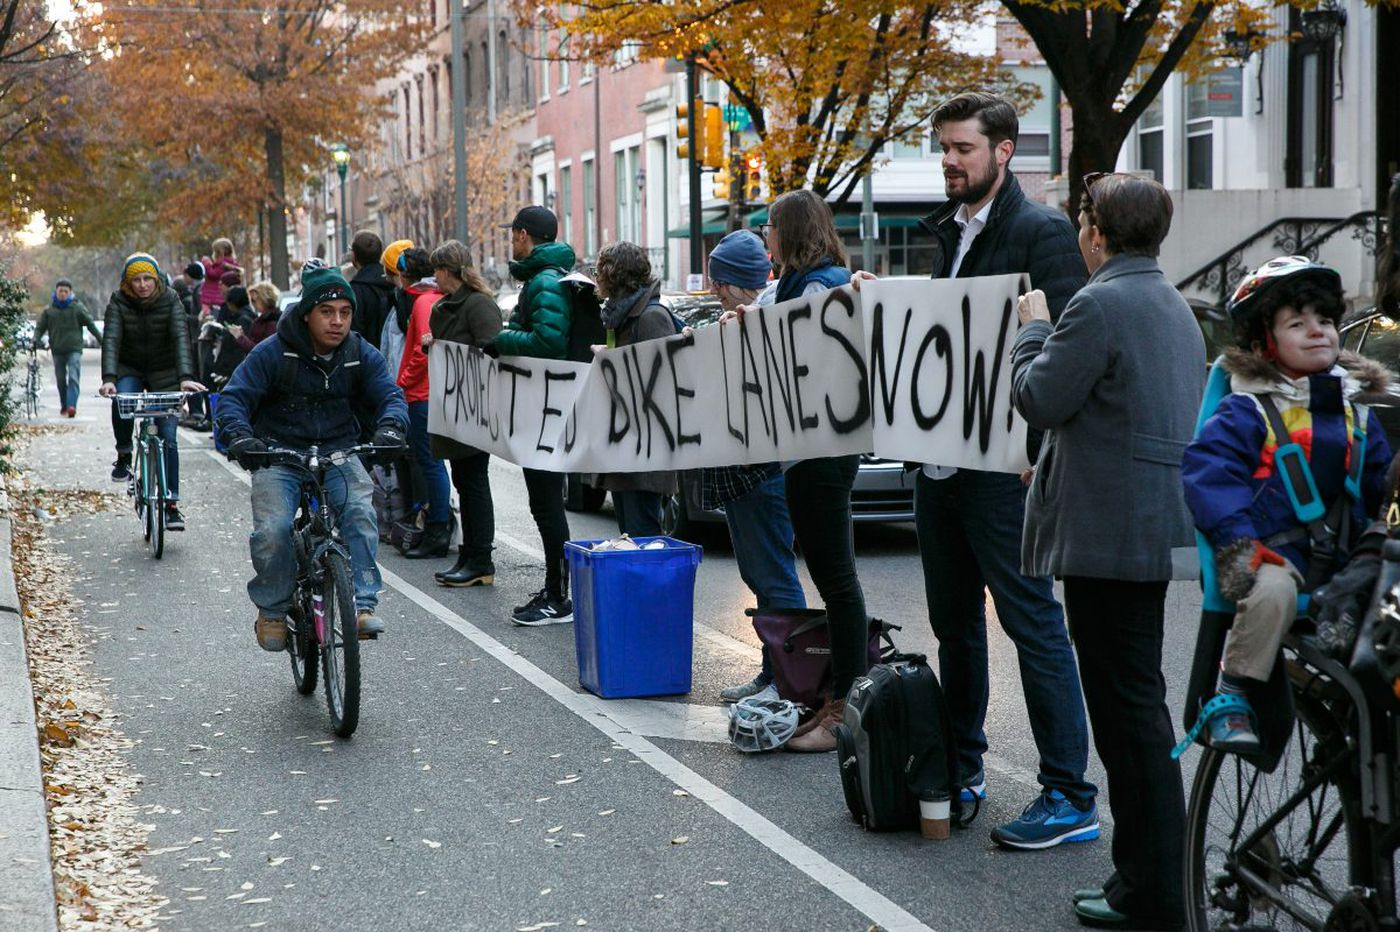 What Philly should do about bike-lane safety | Readers respond